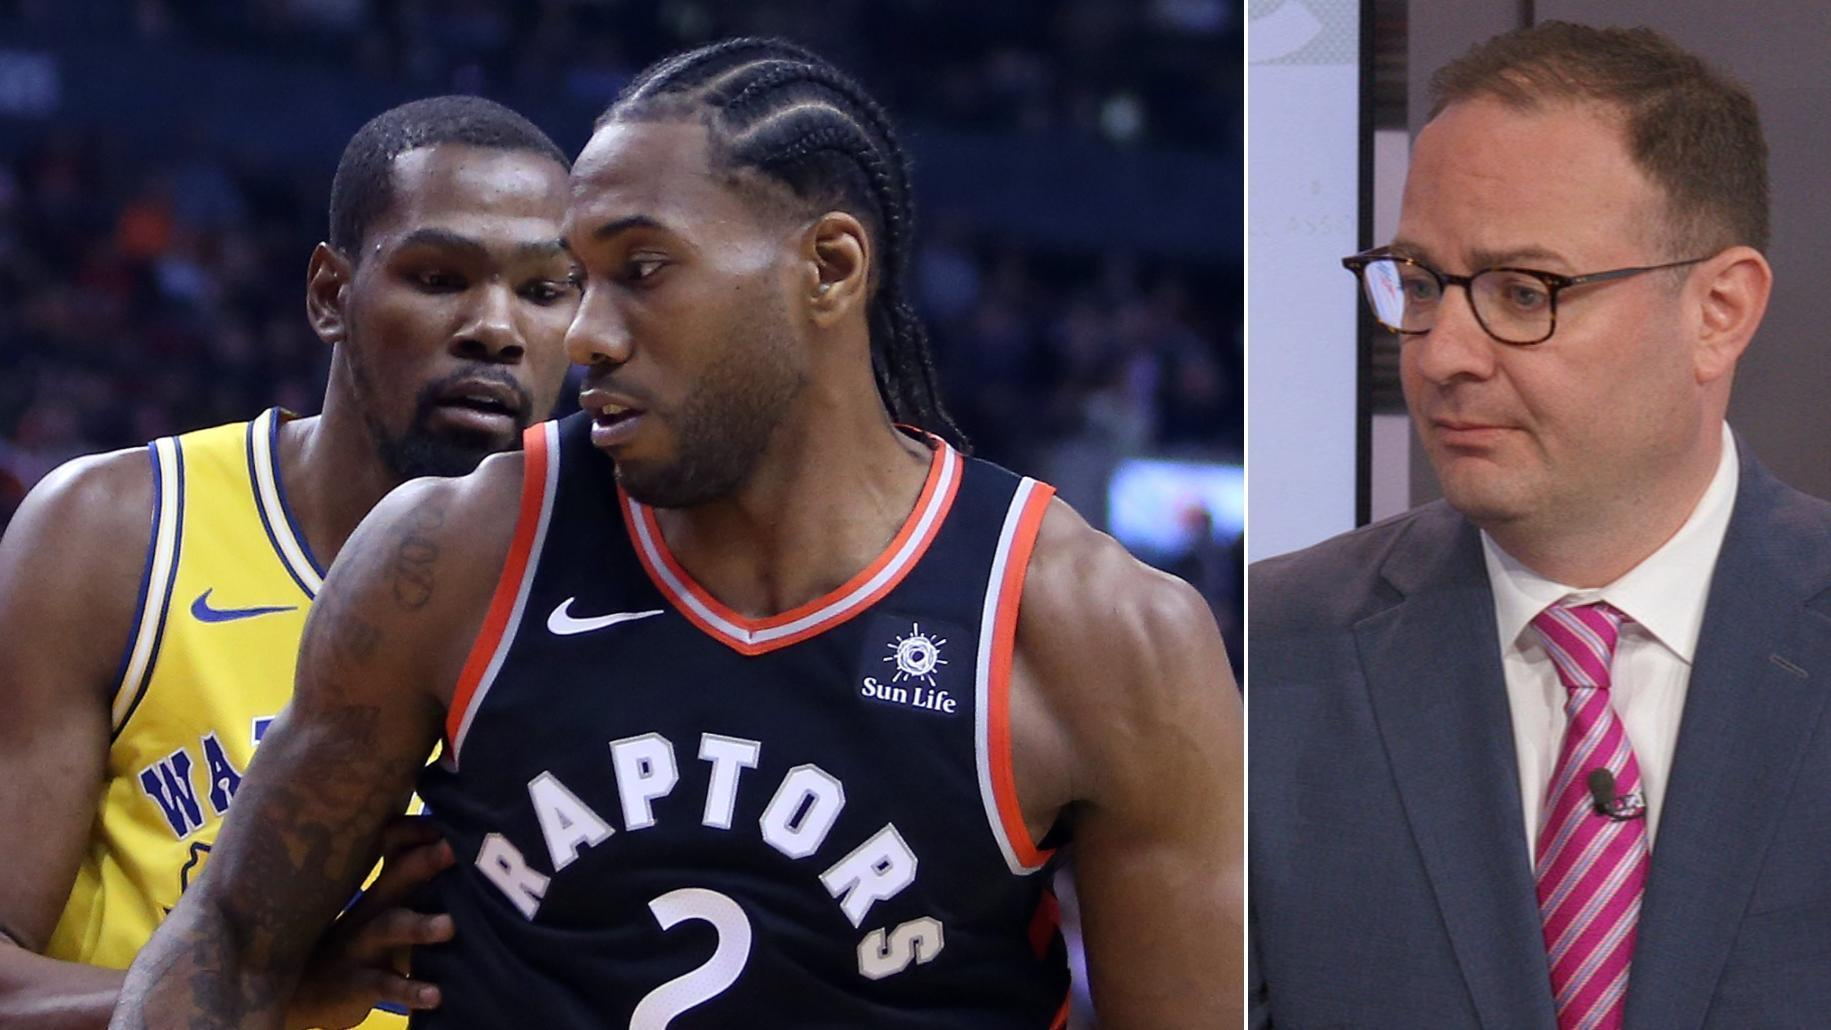 Woj: Kawhi, KD have had talks about teaming up